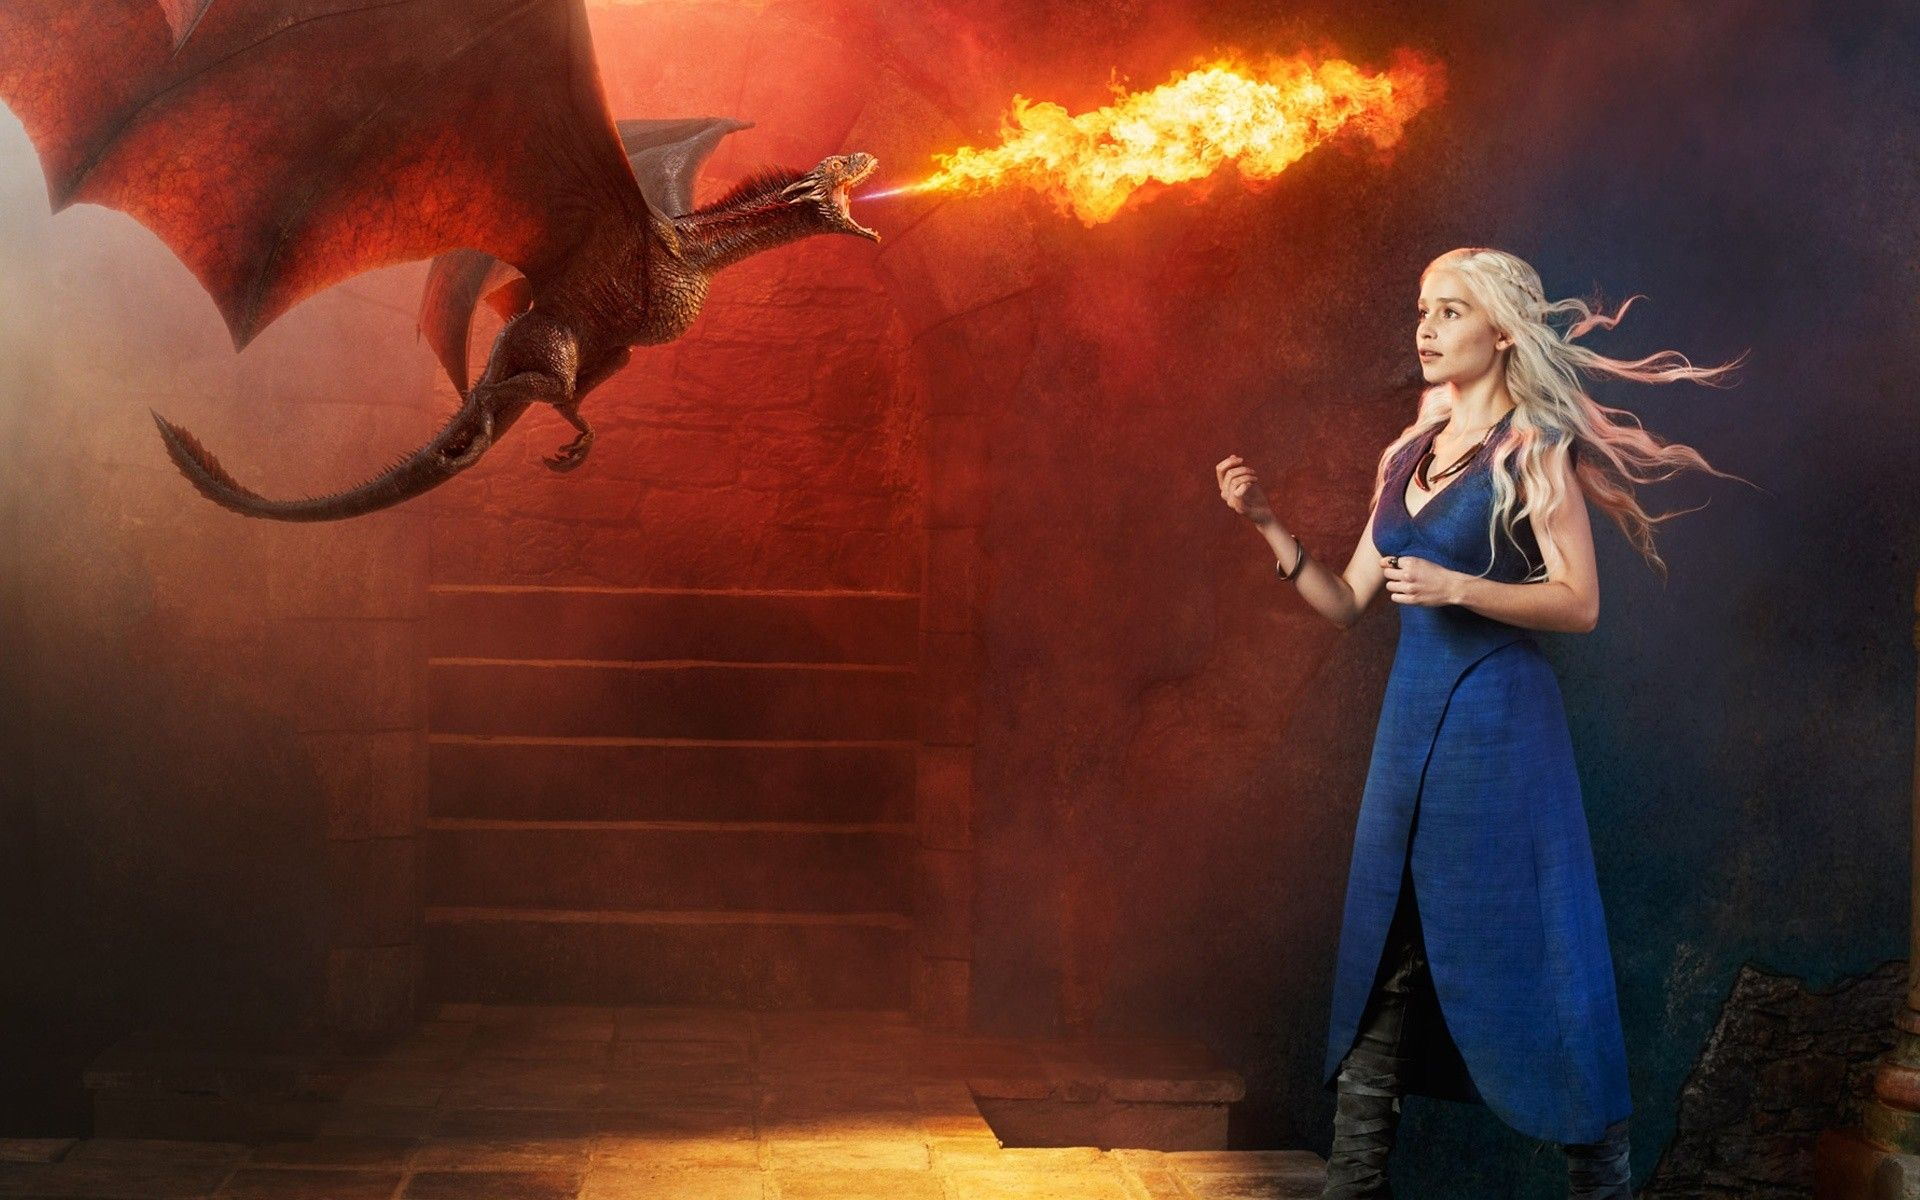 Game of Thrones daenerys and small dragon wallpaper